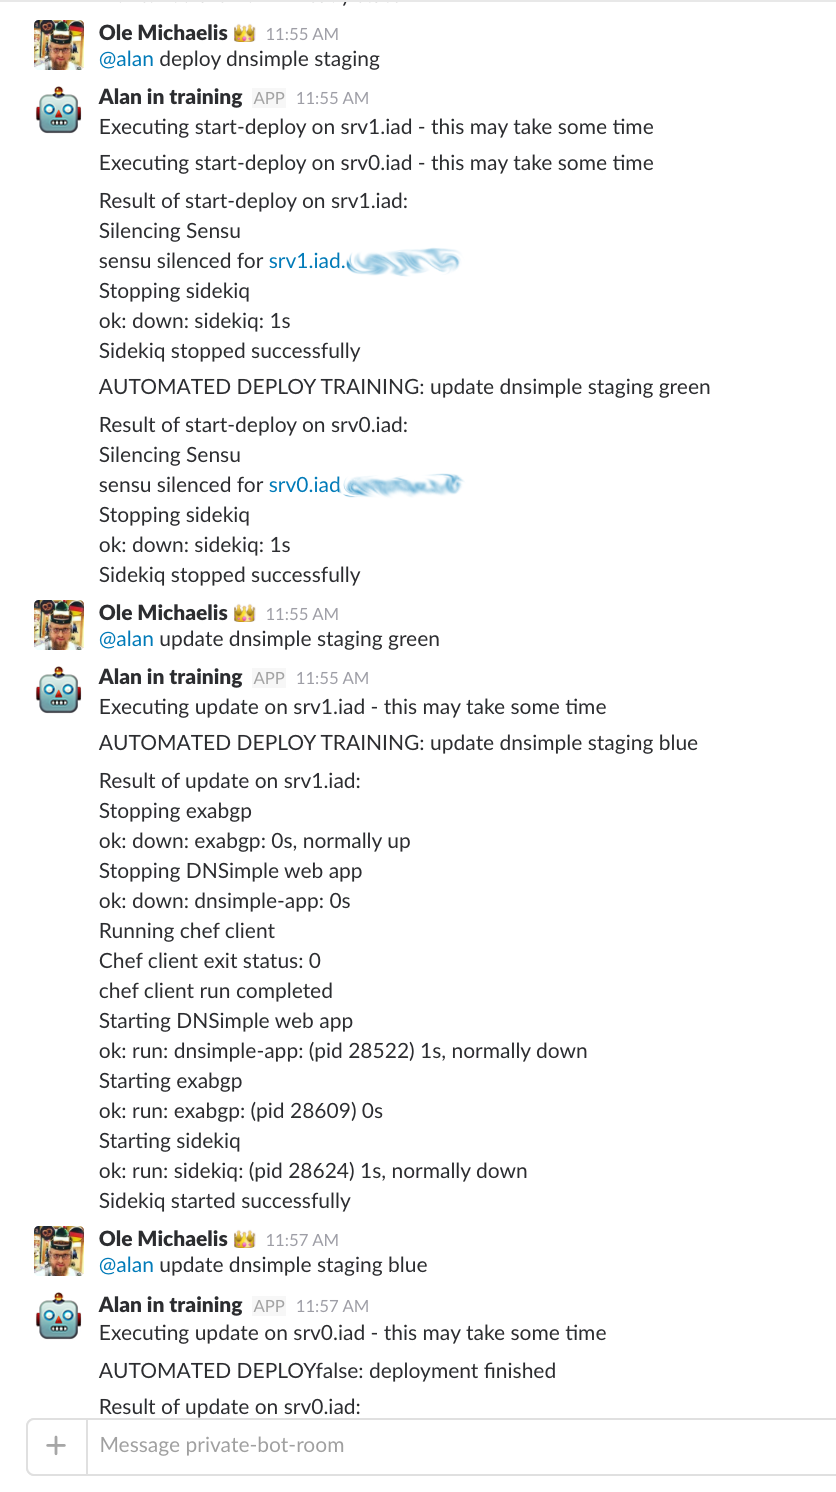 Screenshot showing the old manual deploy in Slack